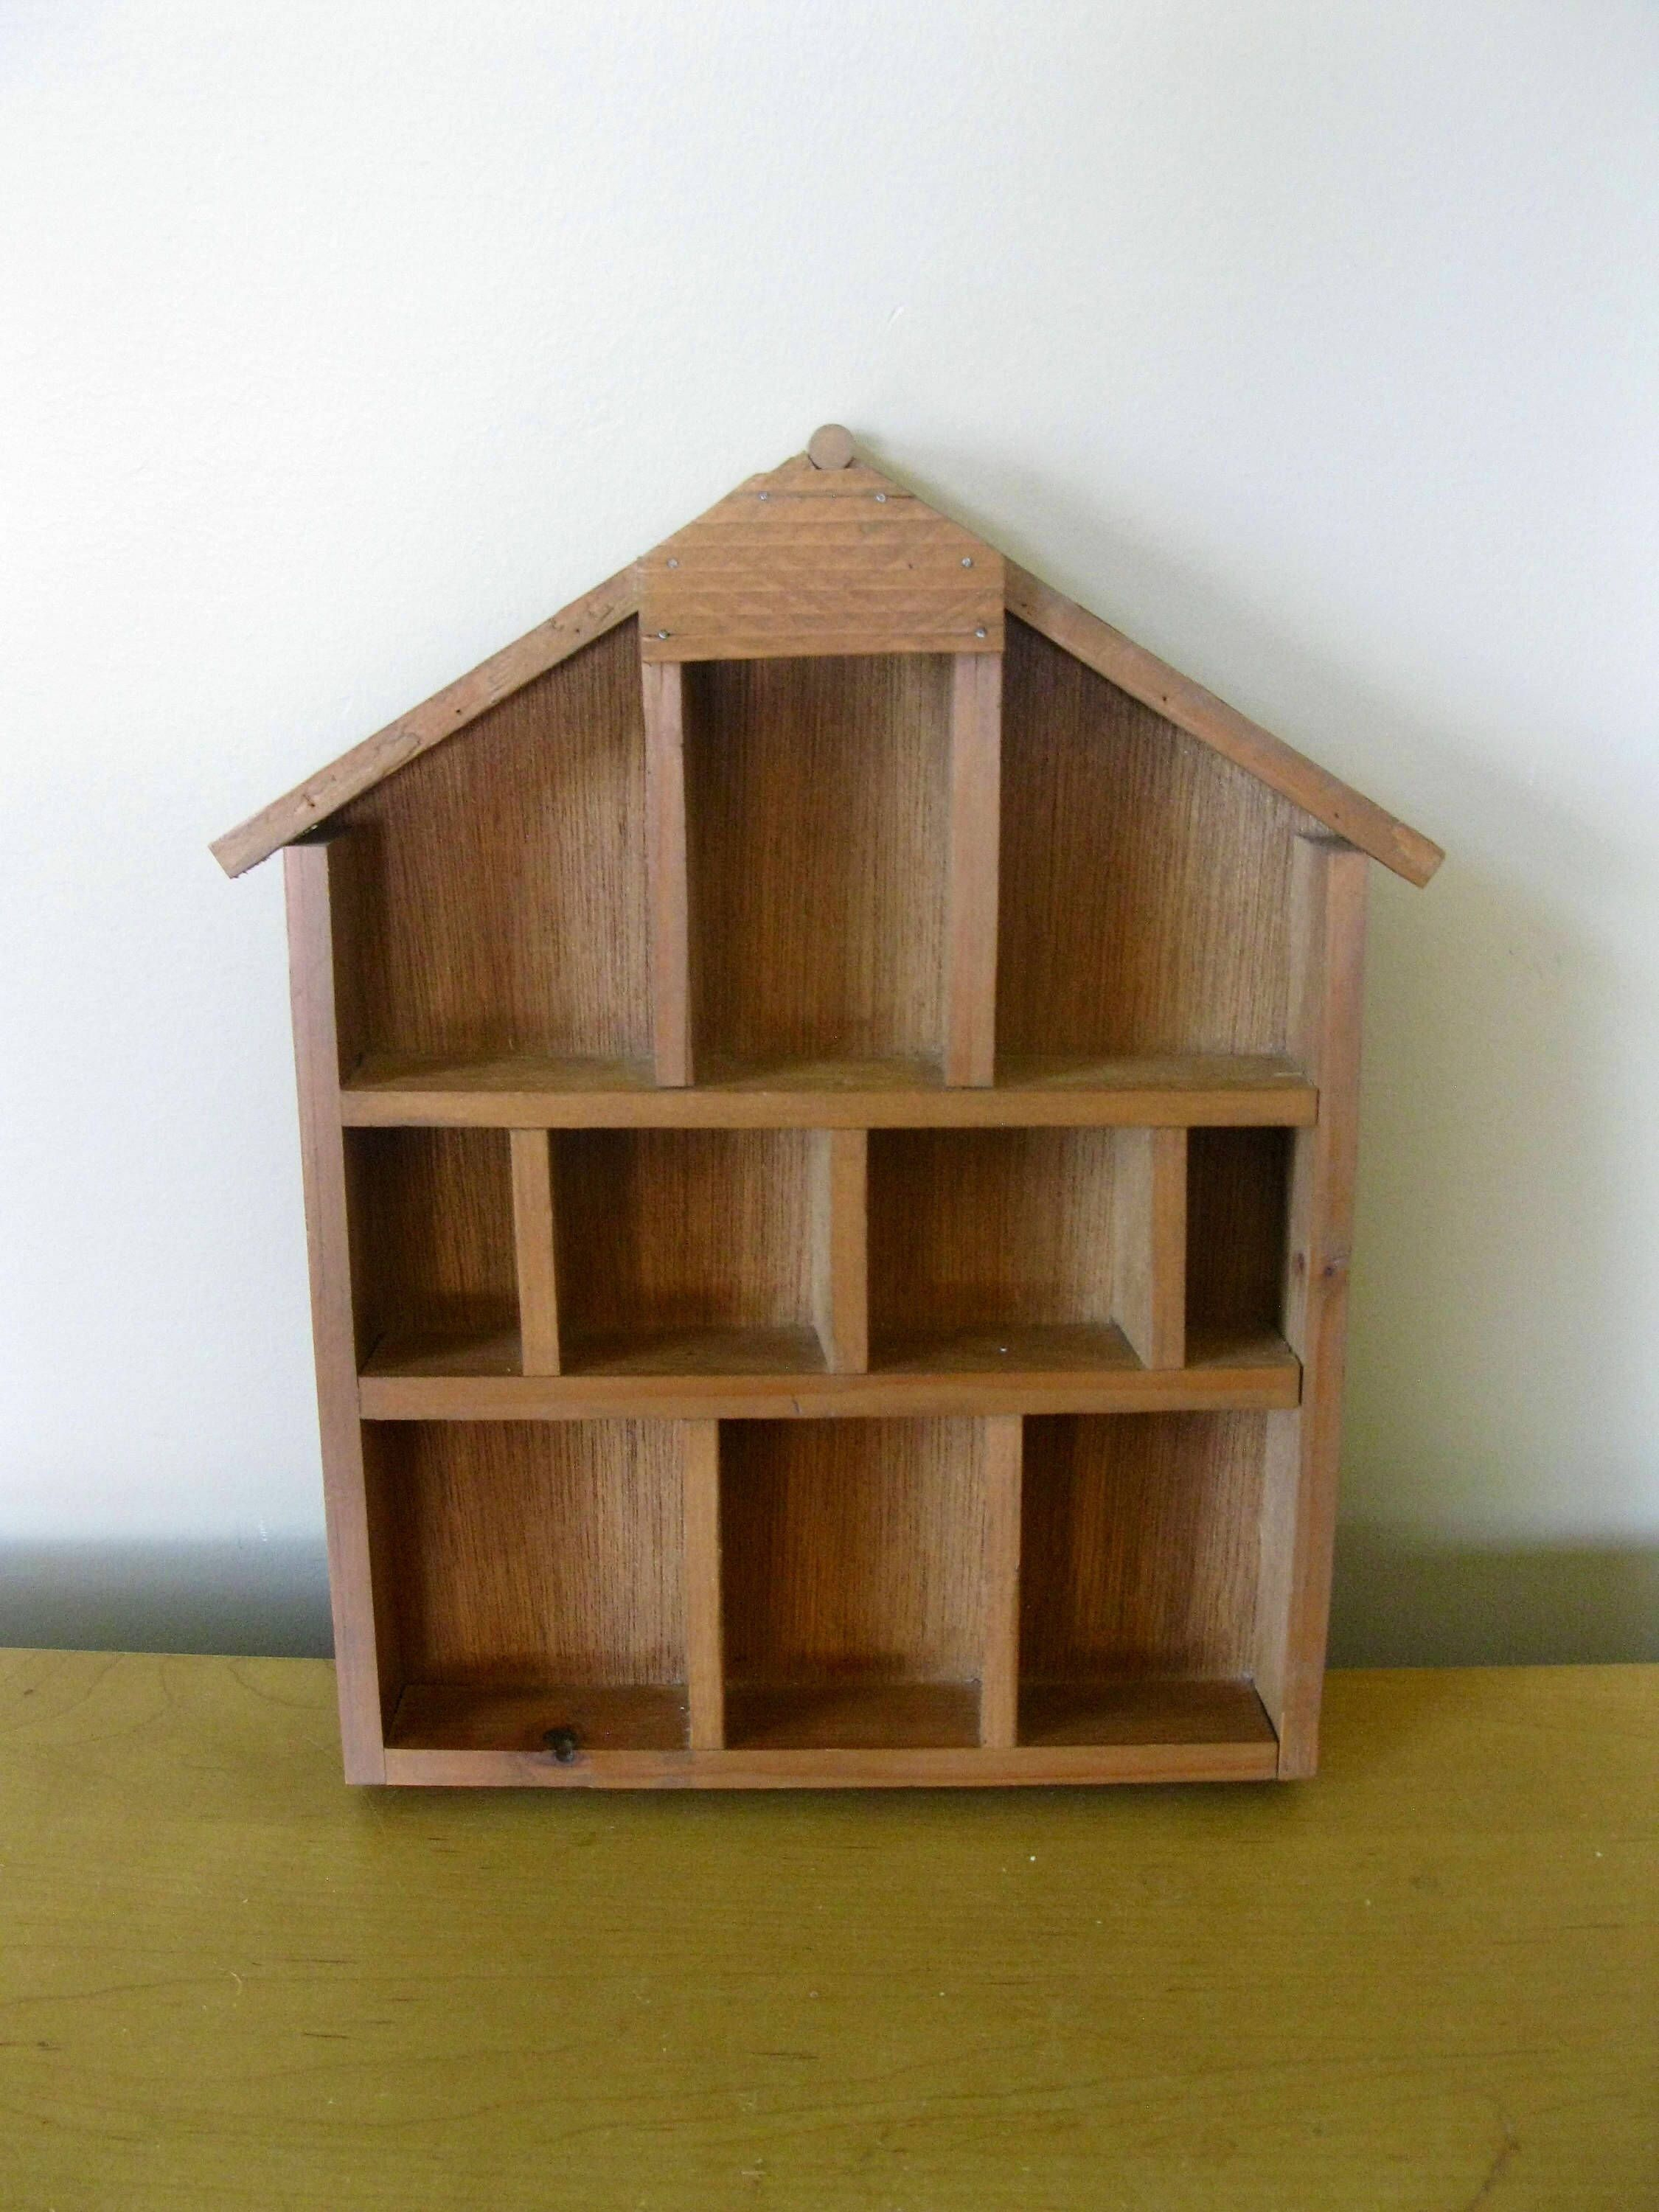 Wood Shadow Box 12 1 2 X 10 1 2 House Shaped Knick Knack Trinket Display Case Wall Curio Miniature Collections Case 15 Compartment Wood Shadow Box Shadow Box Display Case